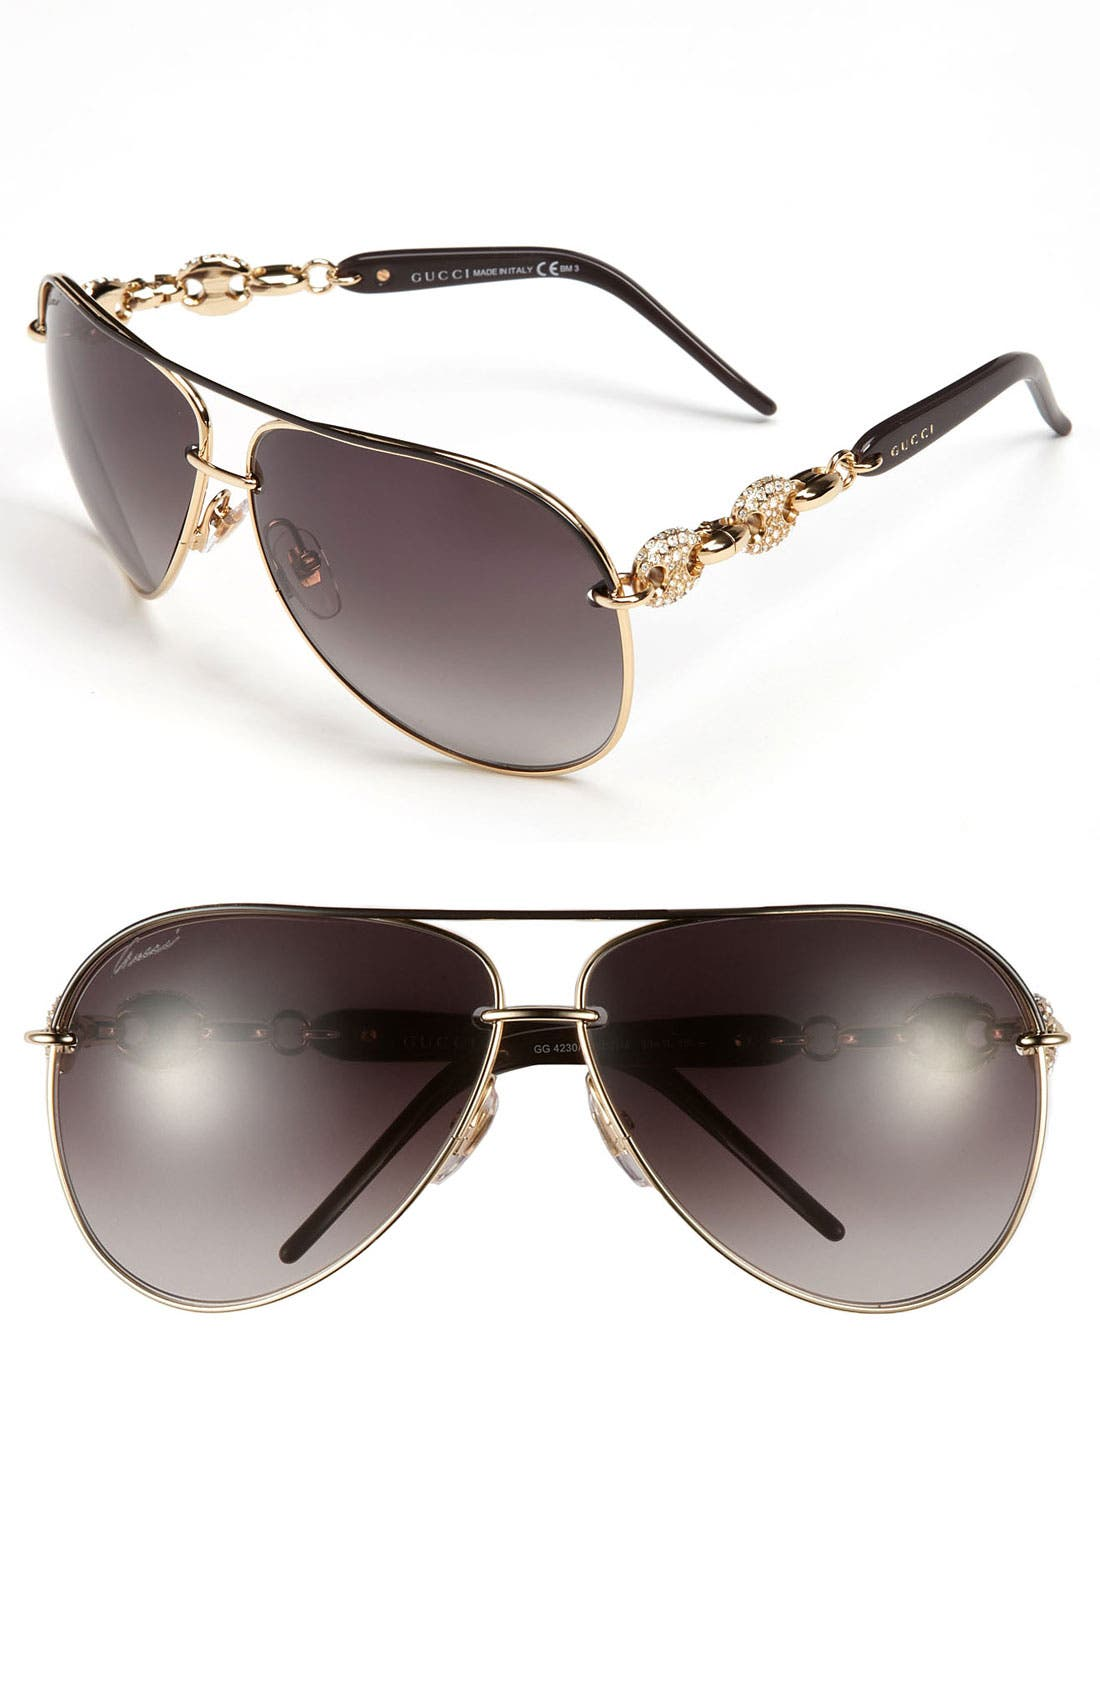 Main Image - Gucci 63mm Embellished Temple Aviator Sunglasses